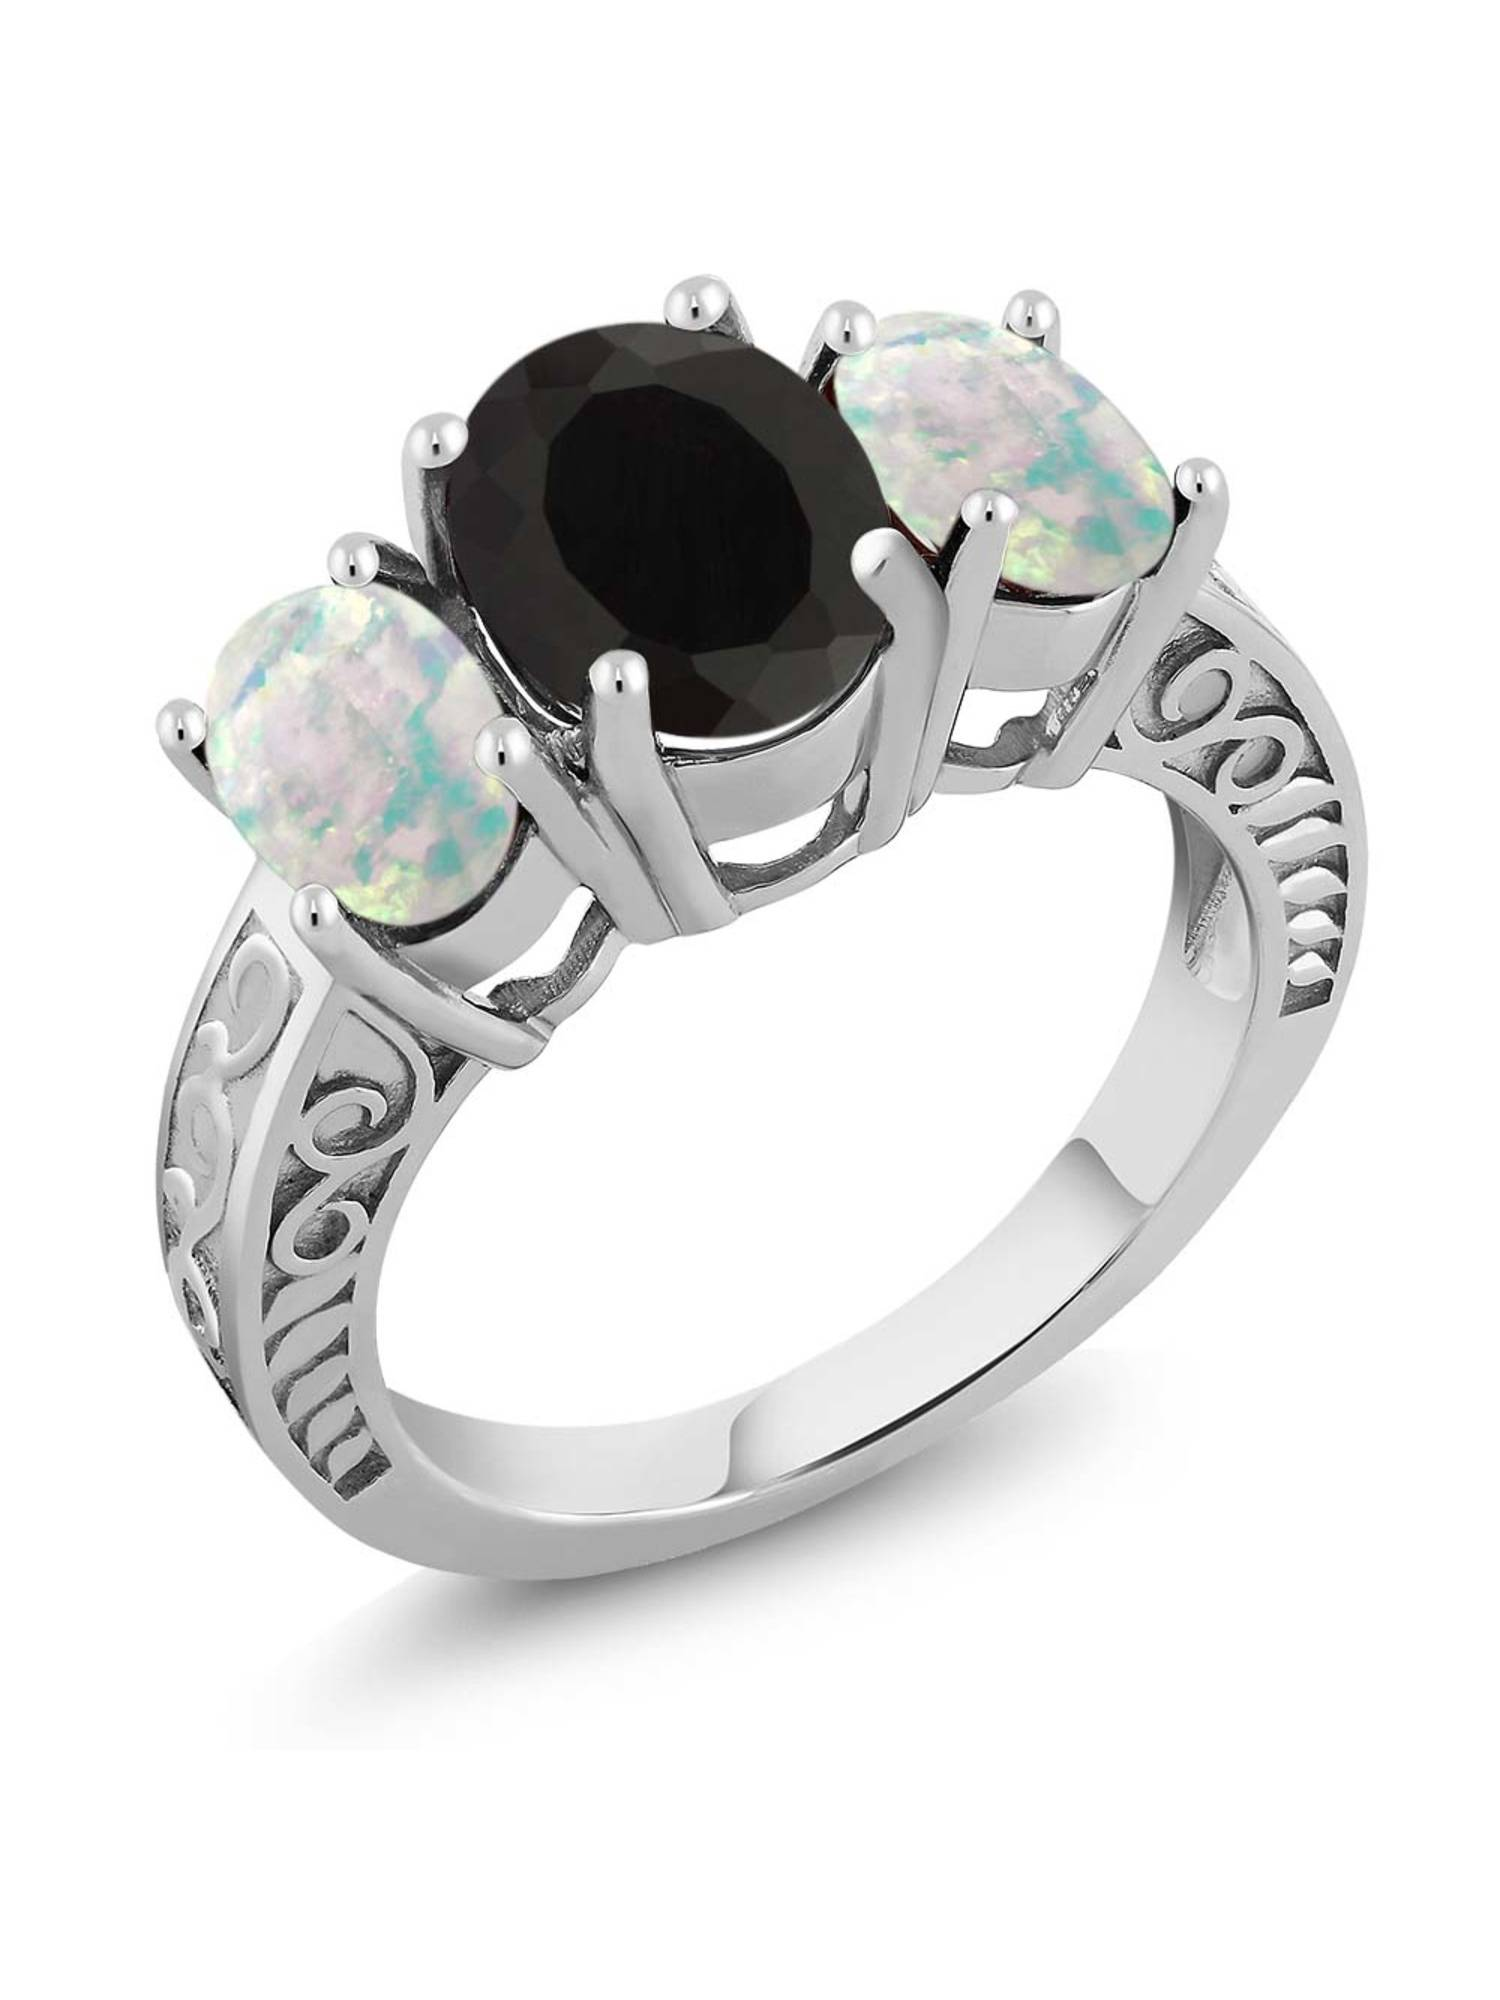 3.26 Ct Oval Black Onyx and White Simulated Opal 925 Sterling Silver Ring by